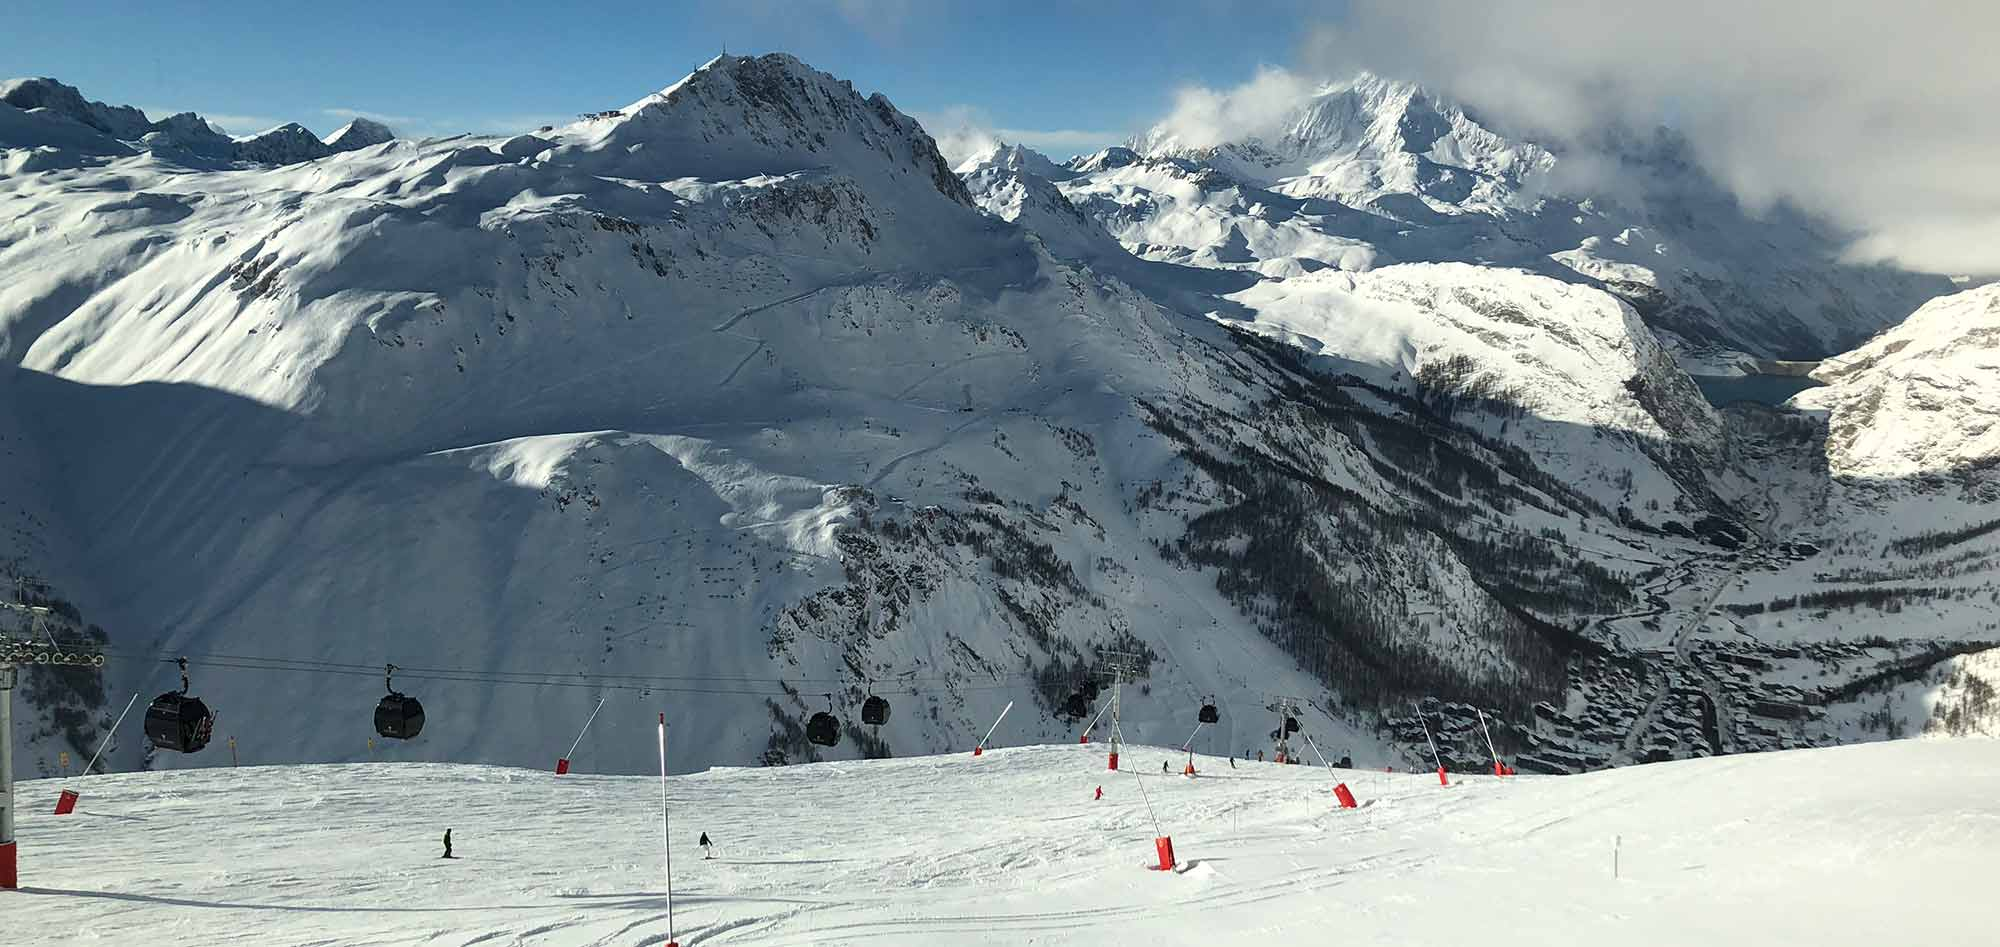 solaise ski slope in the val d'isere mountains